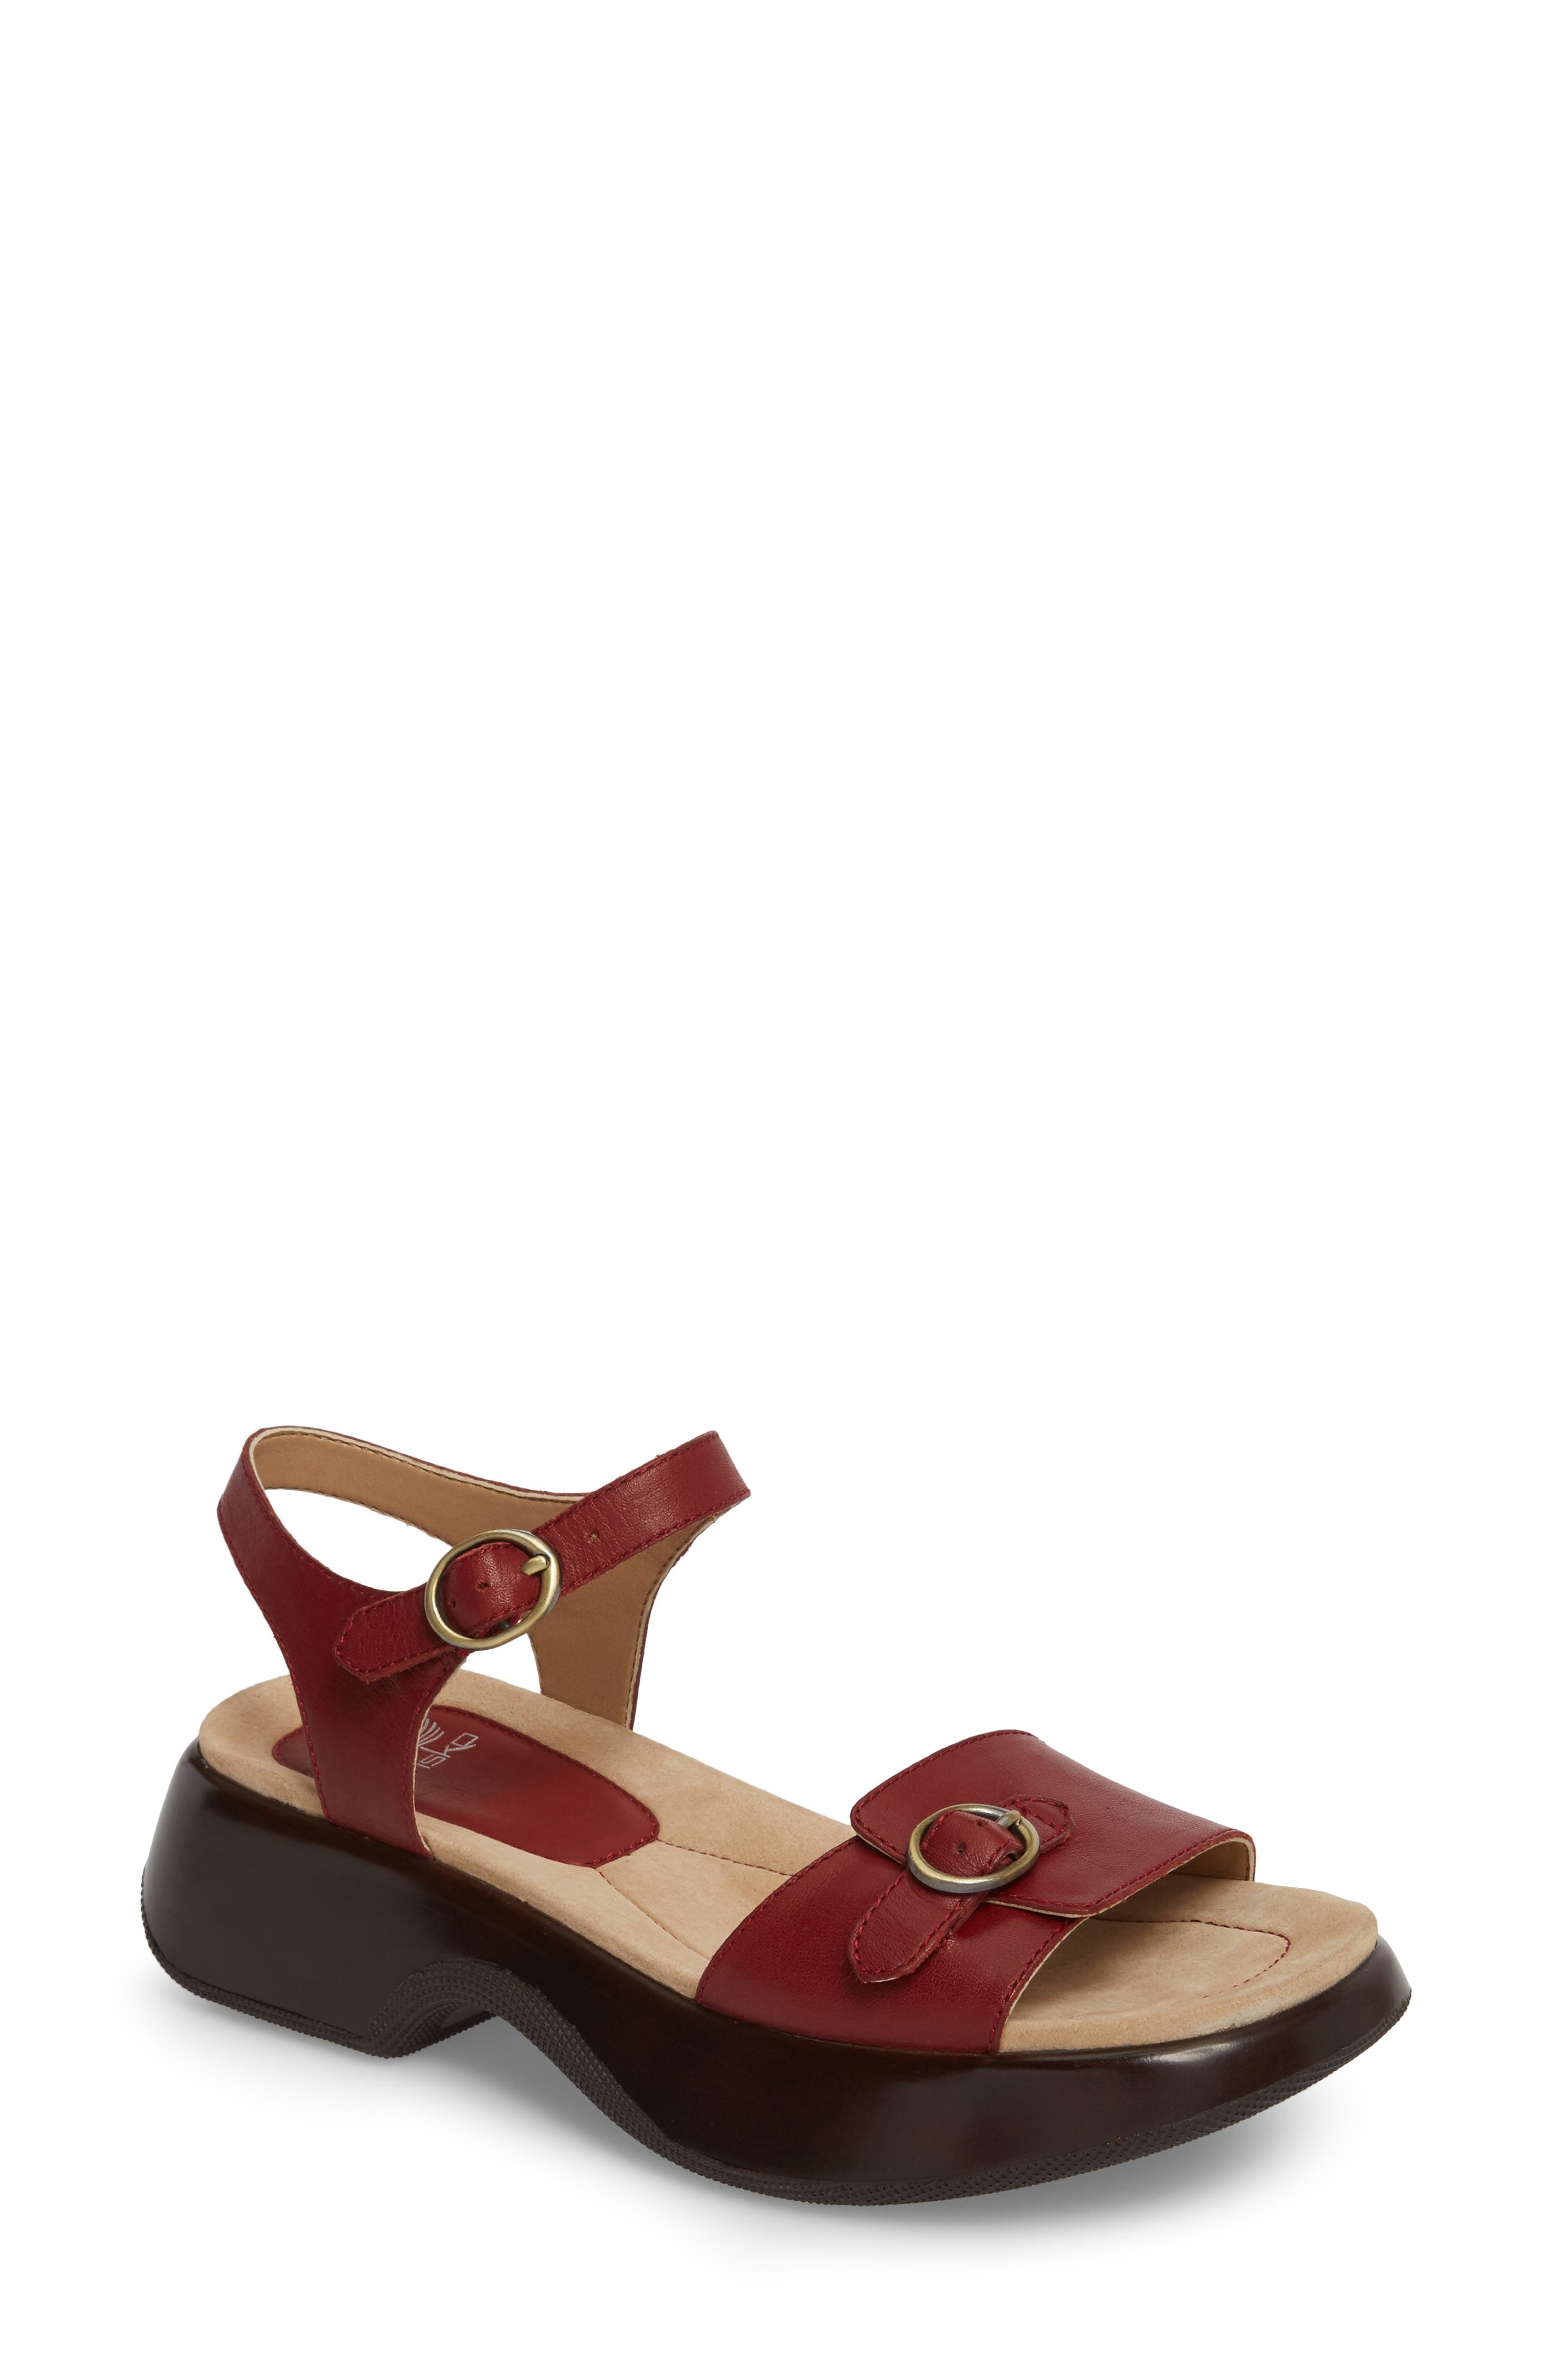 Lynnie Sandal,                         Main,                         color, Red Leather